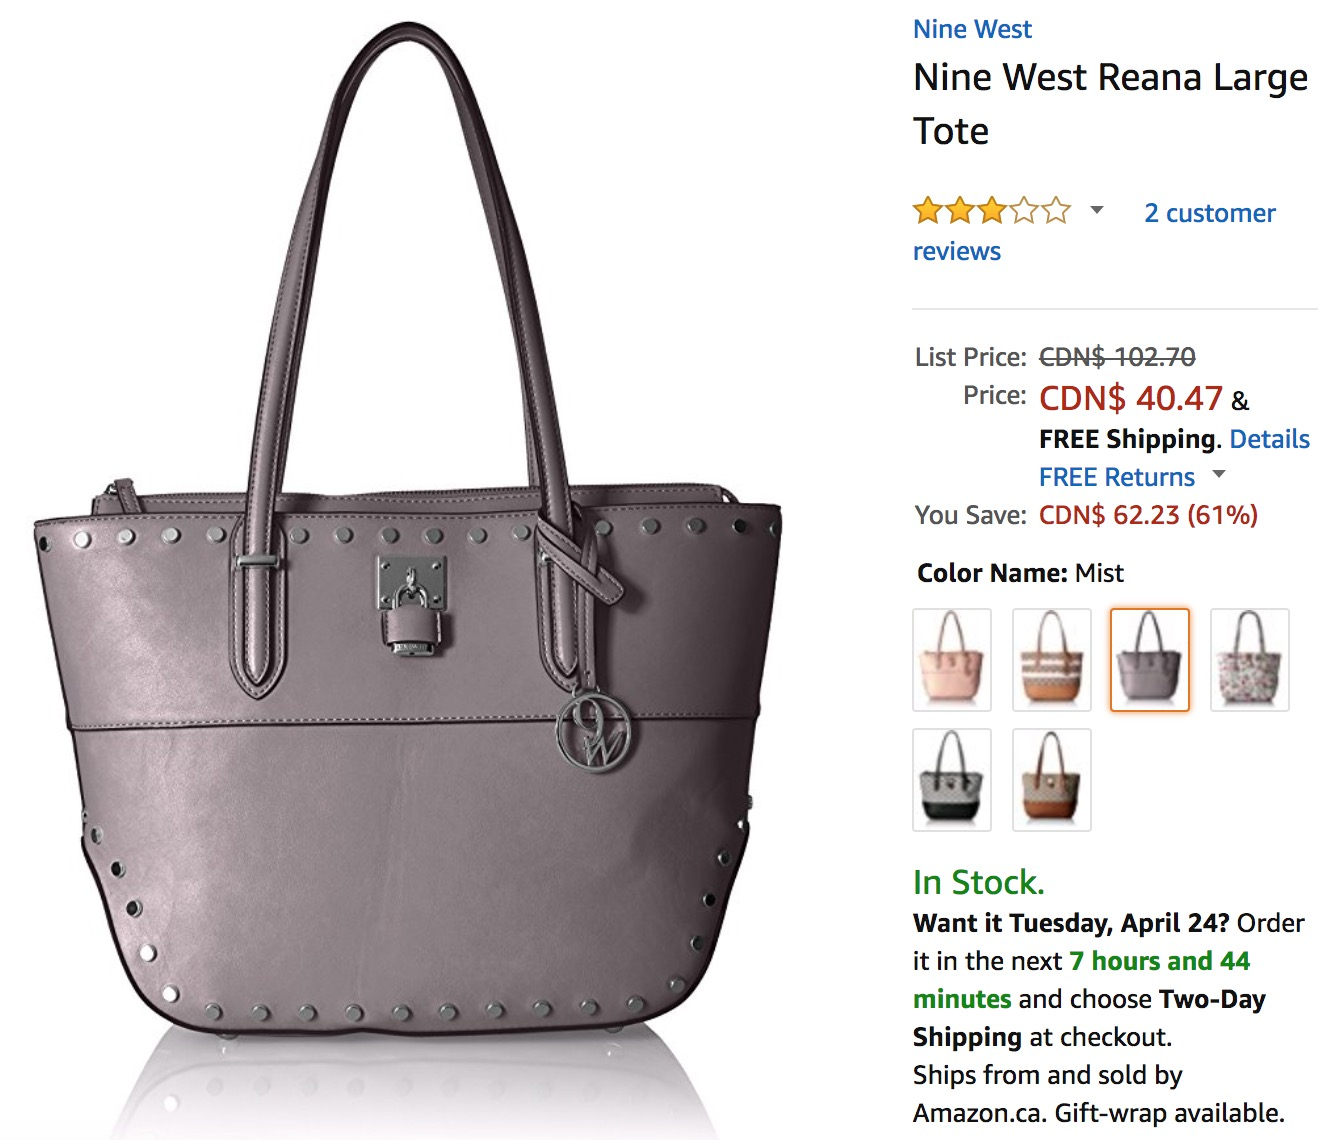 Amazon Canada Deals: Save 61% on Nine West Reana Large Tote